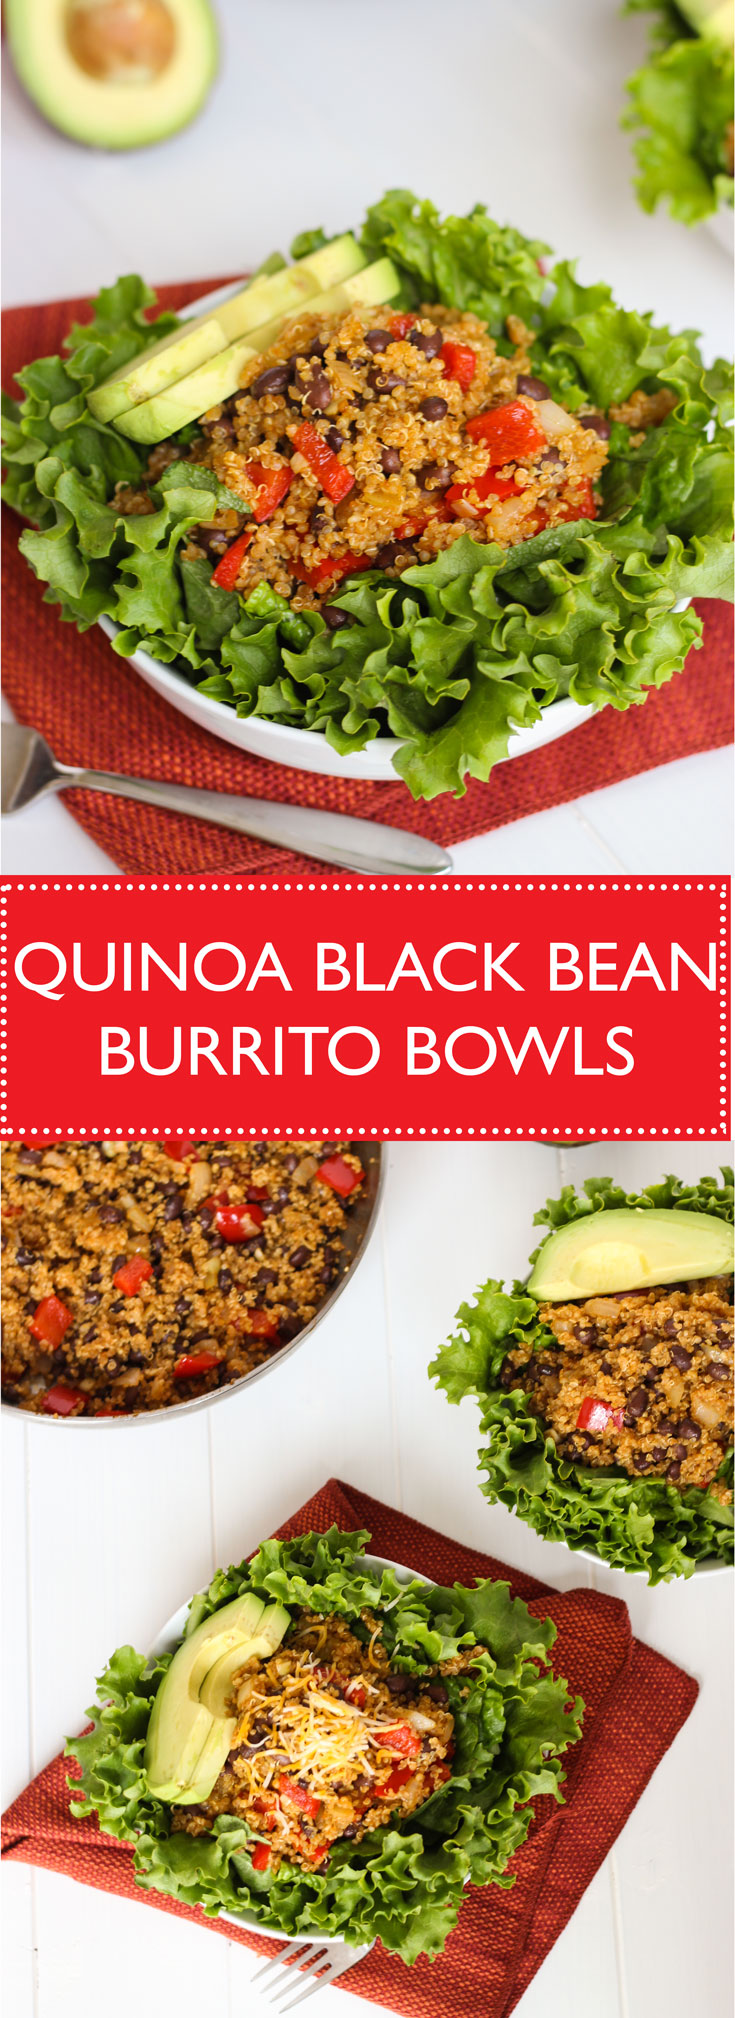 Under 200 calories per serving, these burrito bowls are delicious and healthy!